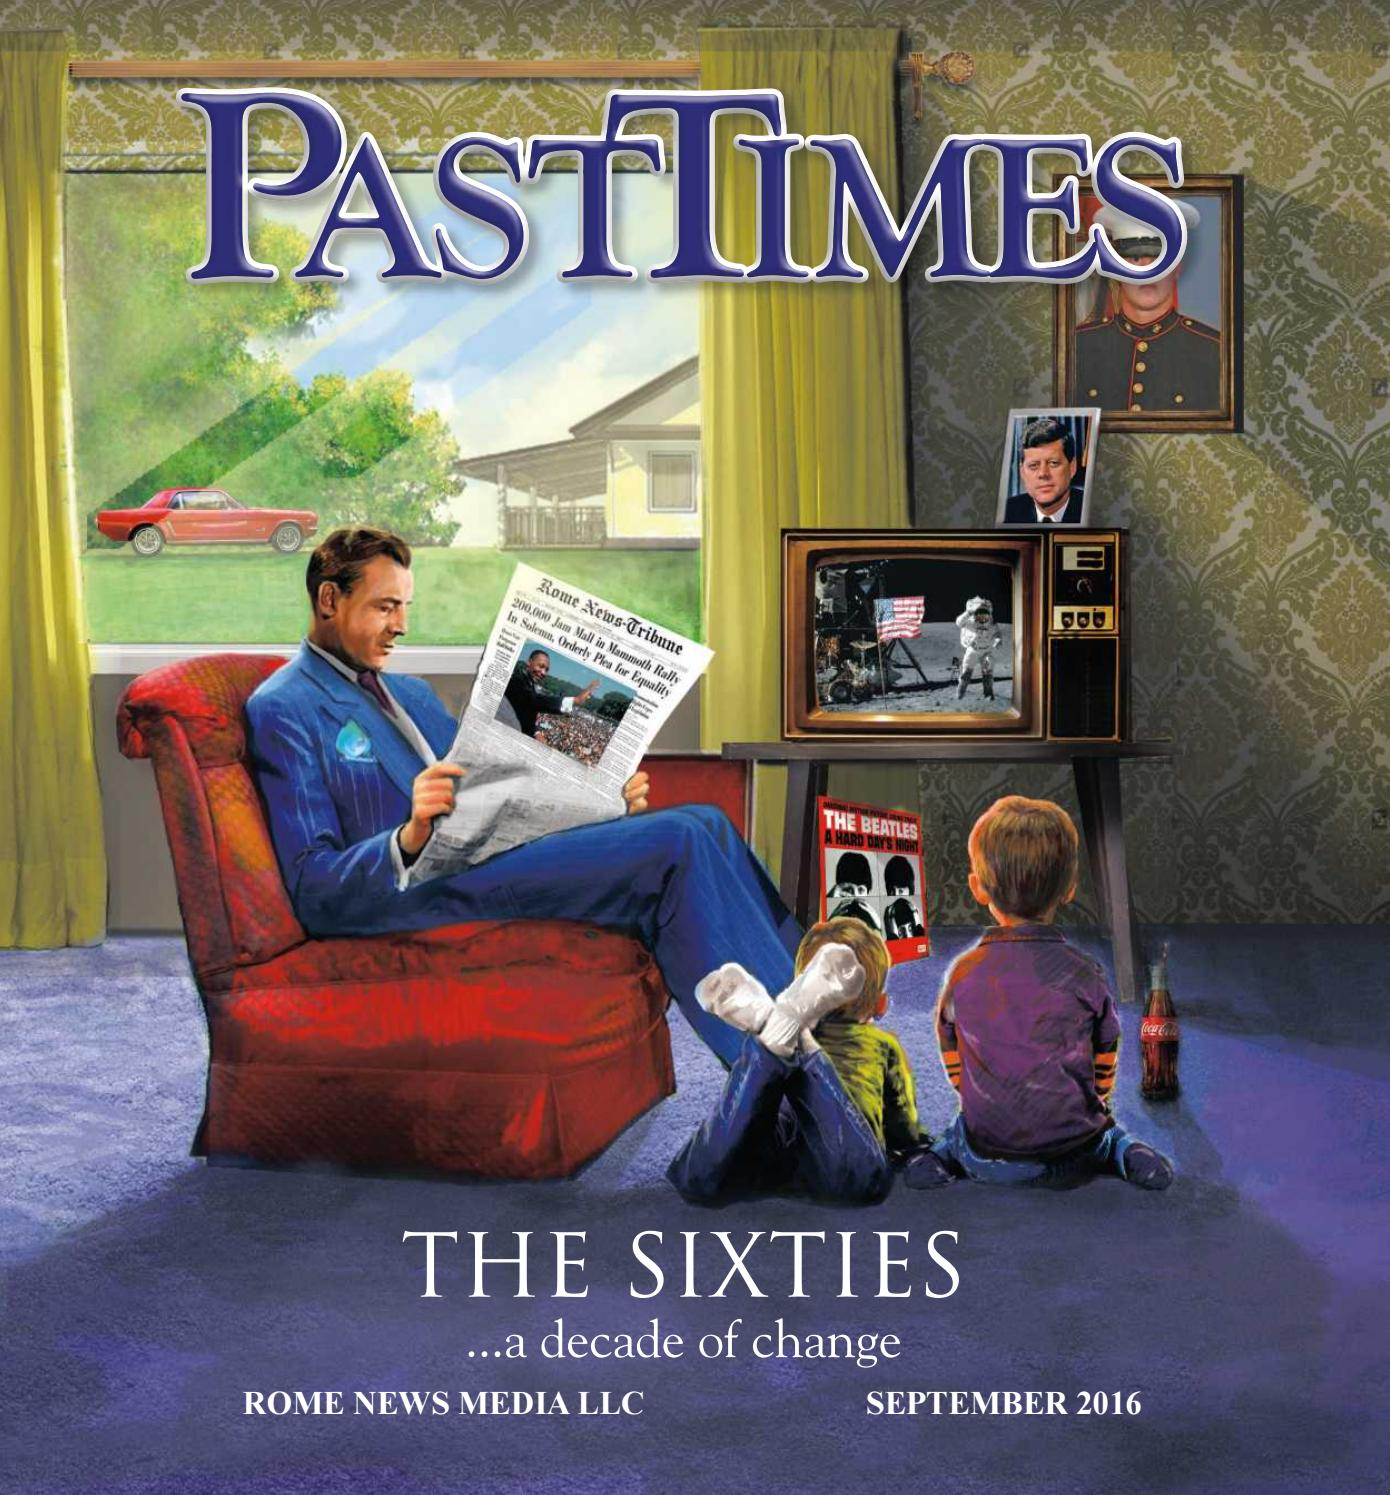 Past Times 2016 The Sixties By Rome News Tribune Issuu